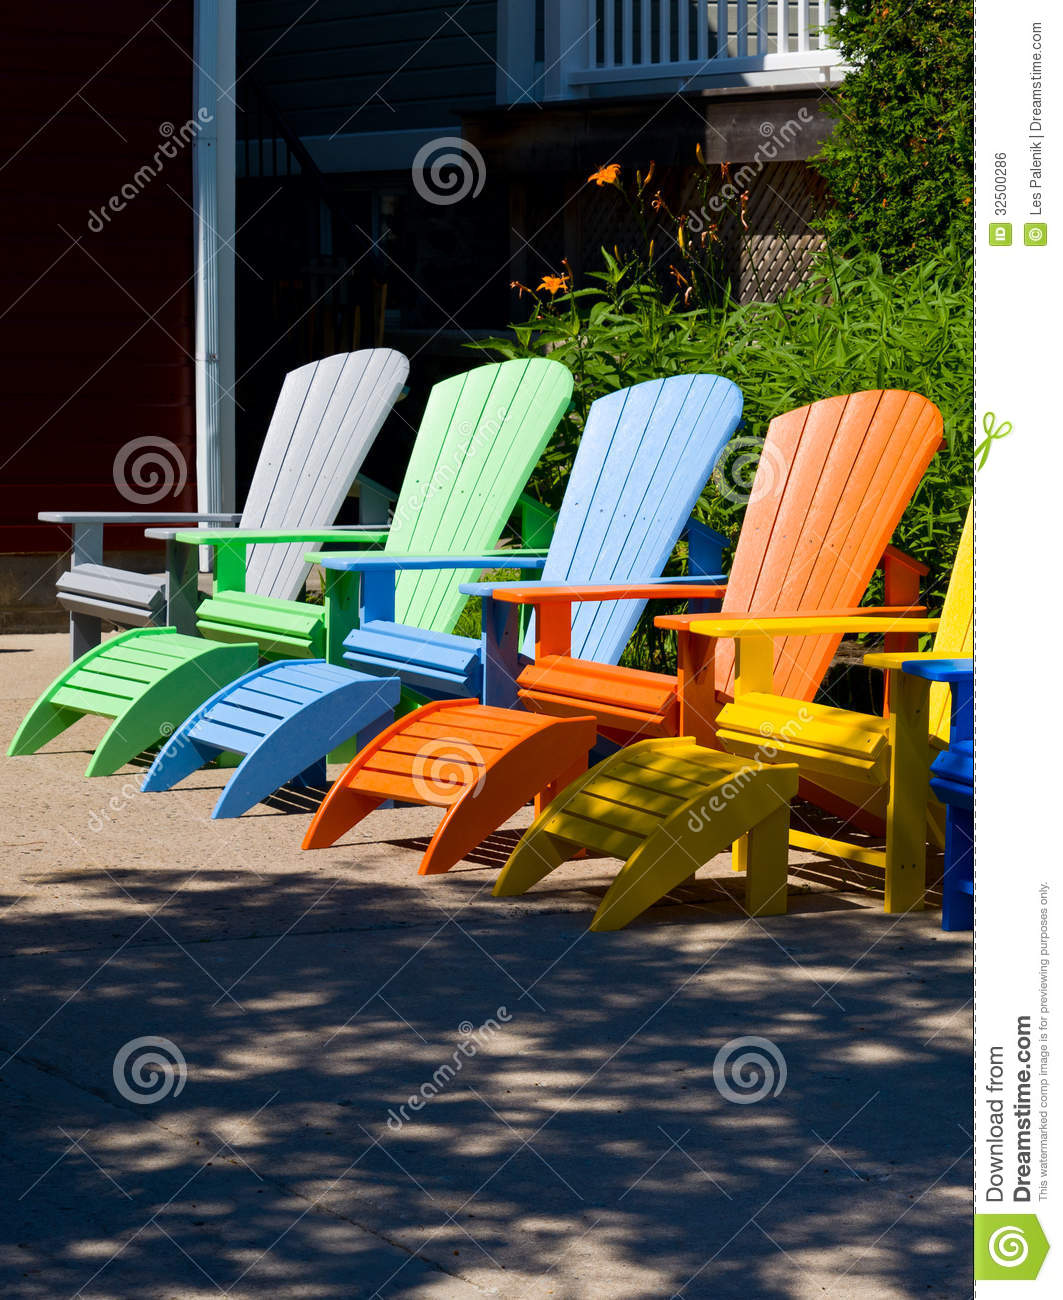 Colorful Wooden Chairs Colorful Chairs Royalty Free Stock Image Image 32500286